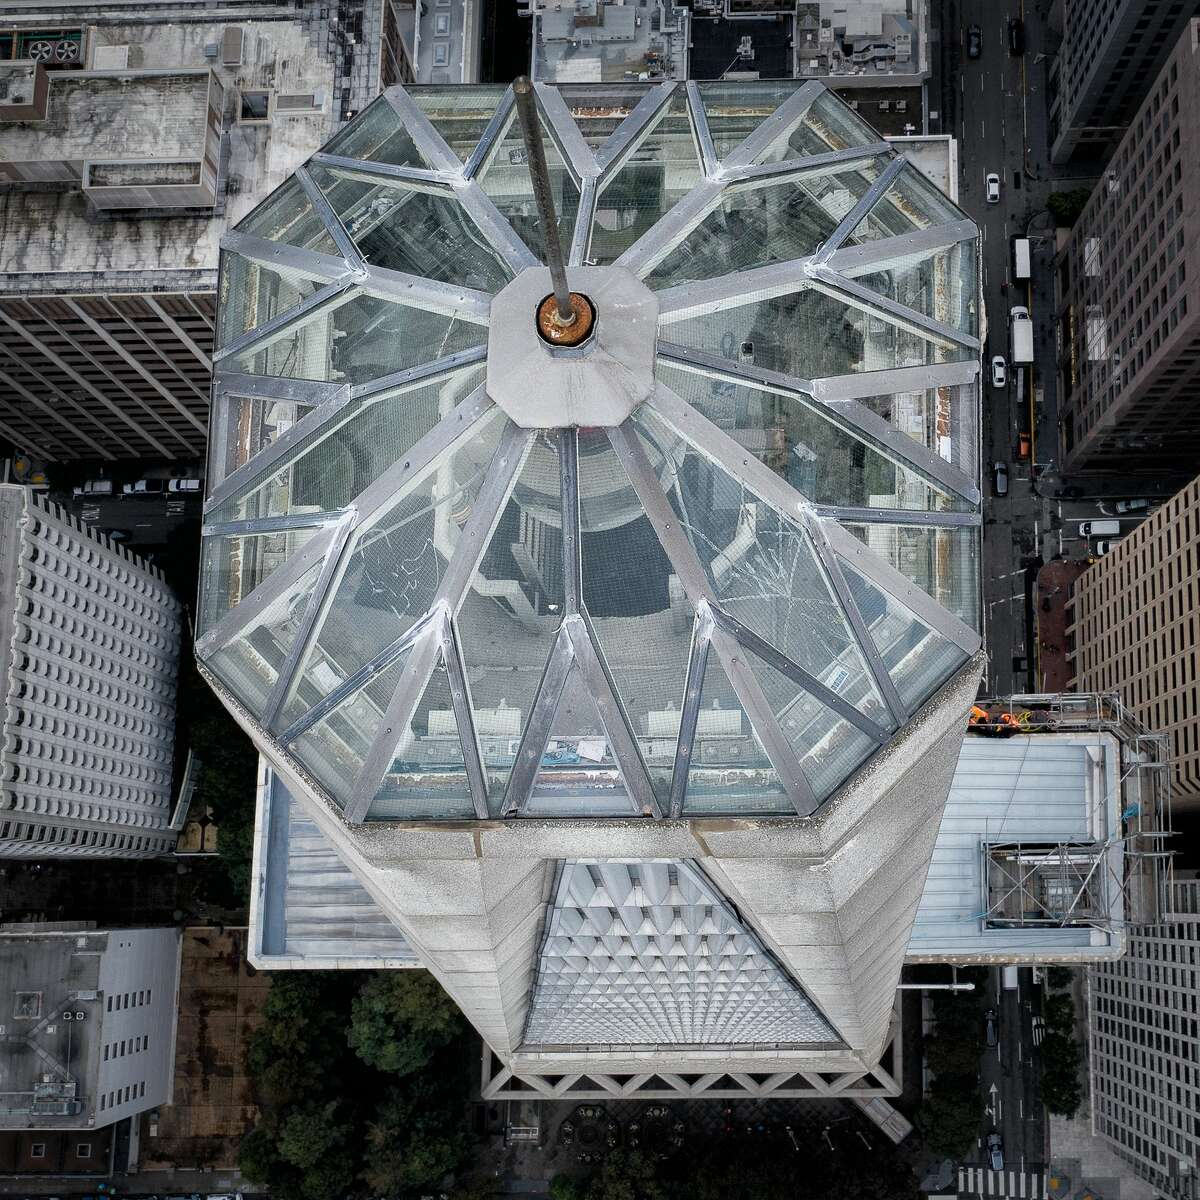 PhotographerRyan Fitzsimons recently discovered the 'crown jewel' on top of the Transamerica Pyramid.